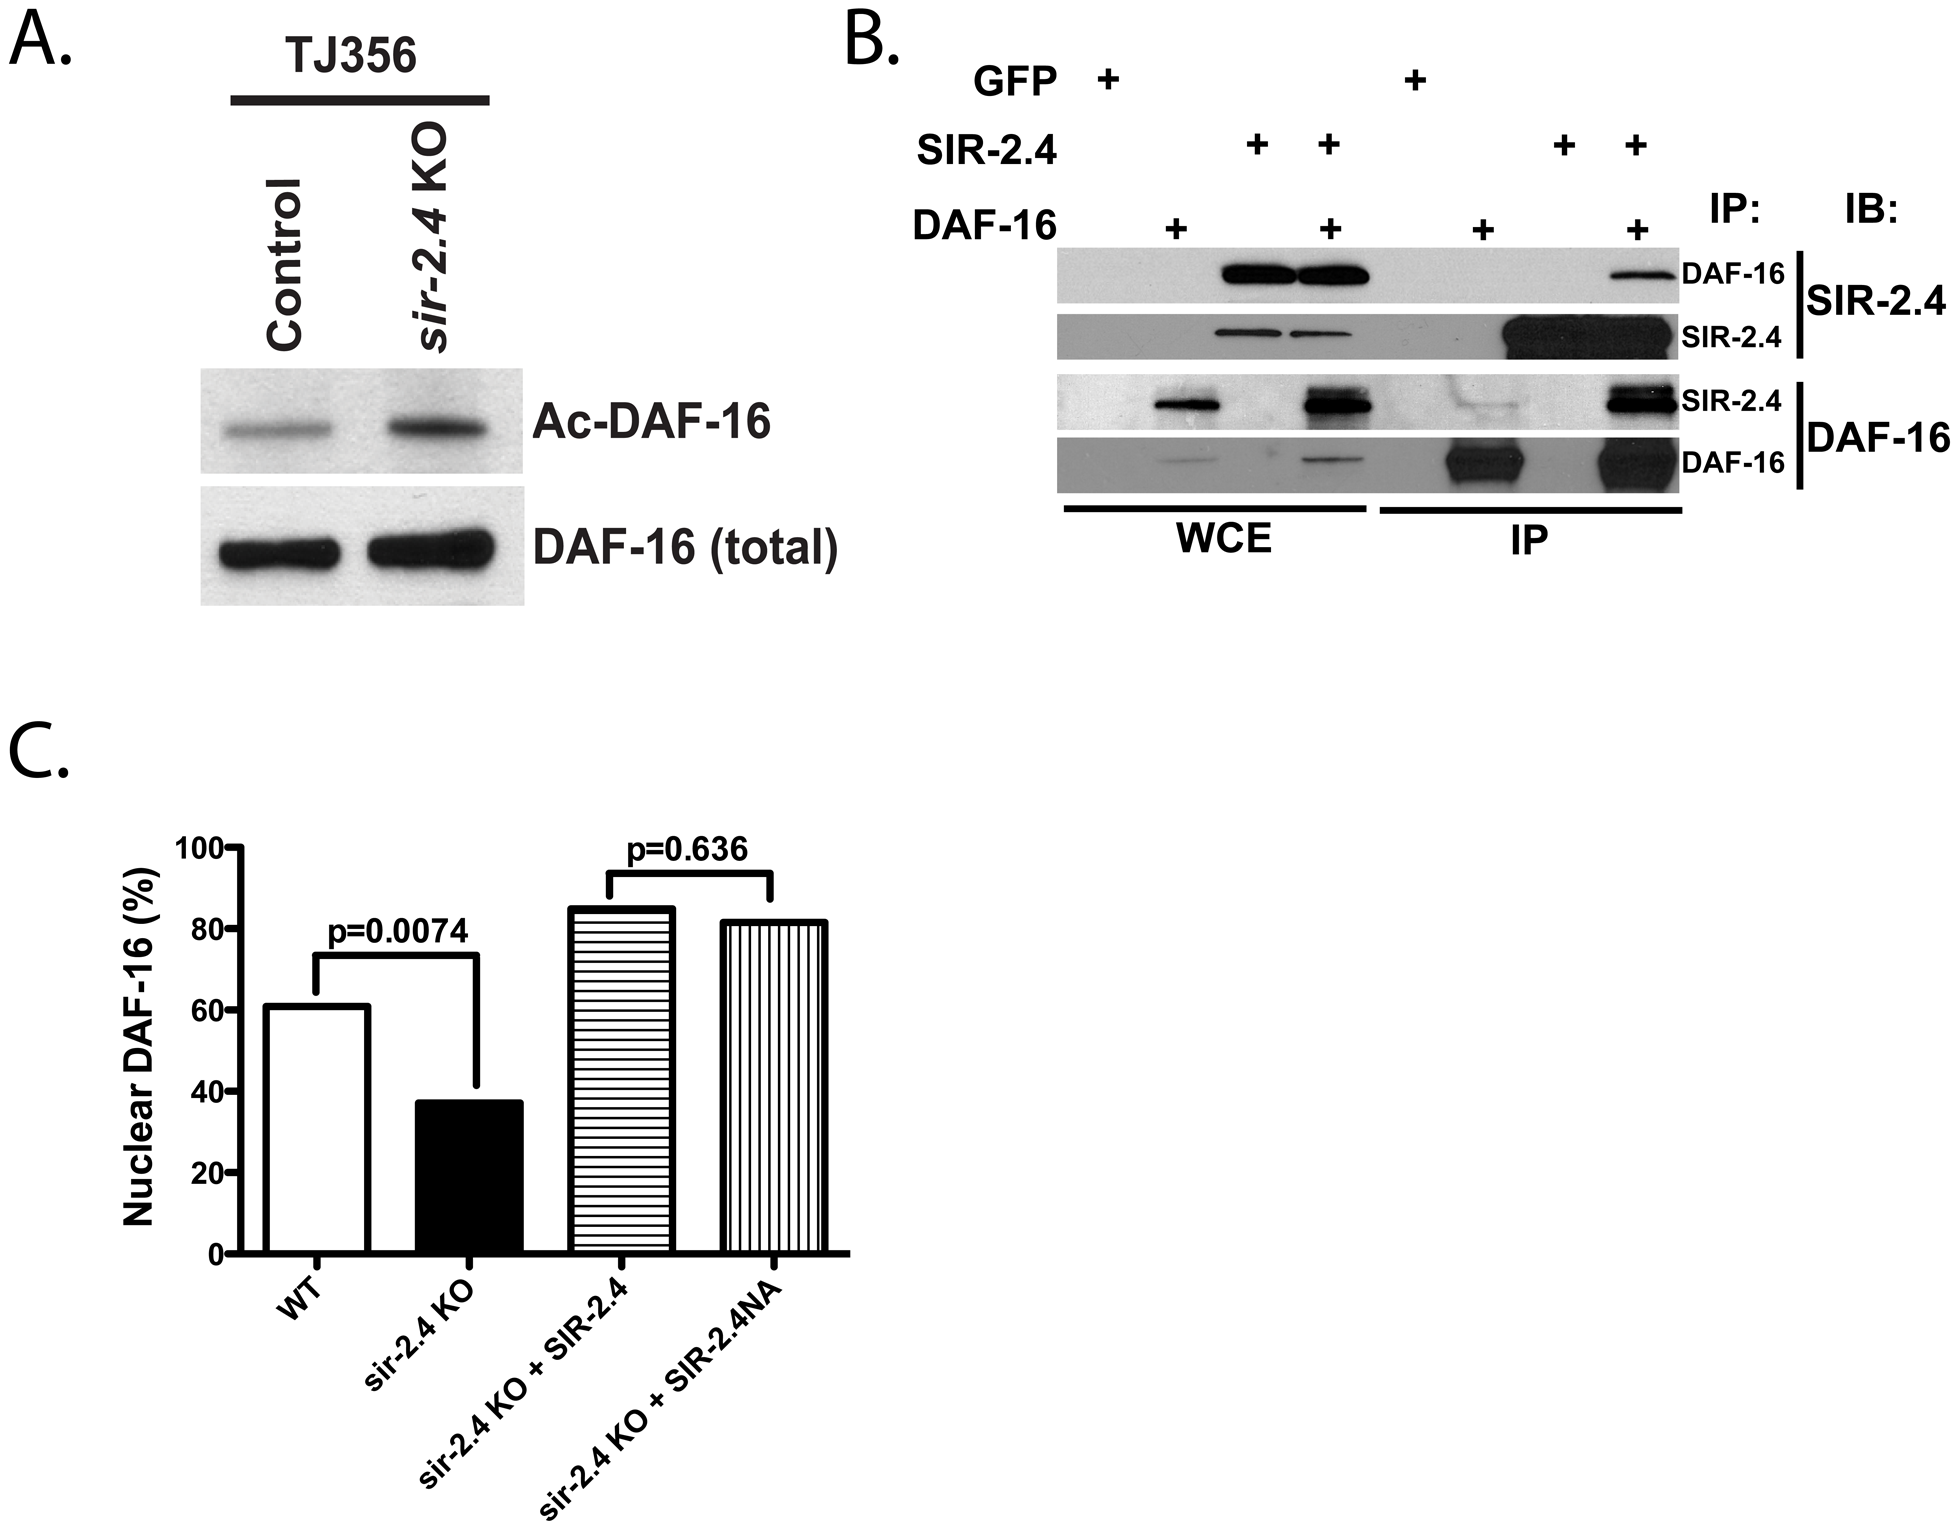 SIR-2.4 interacts with DAF-16 and promotes DAF-16 deacetylation and function independently of catalytic activity.